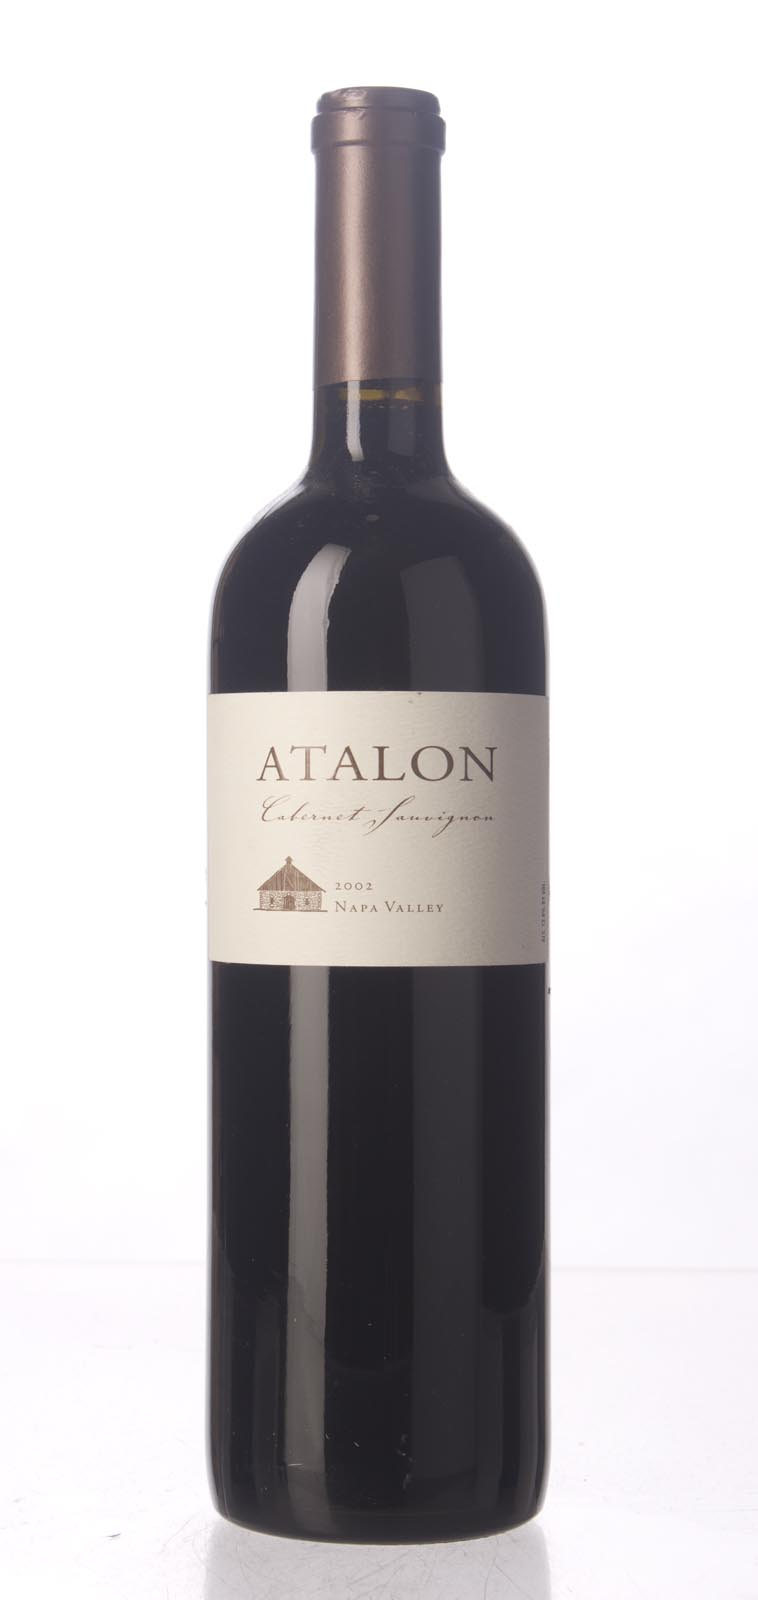 Atalon Cabernet Sauvignon Napa Valley 2002, 750mL (WA90) from The BPW - Merchants of rare and fine wines.